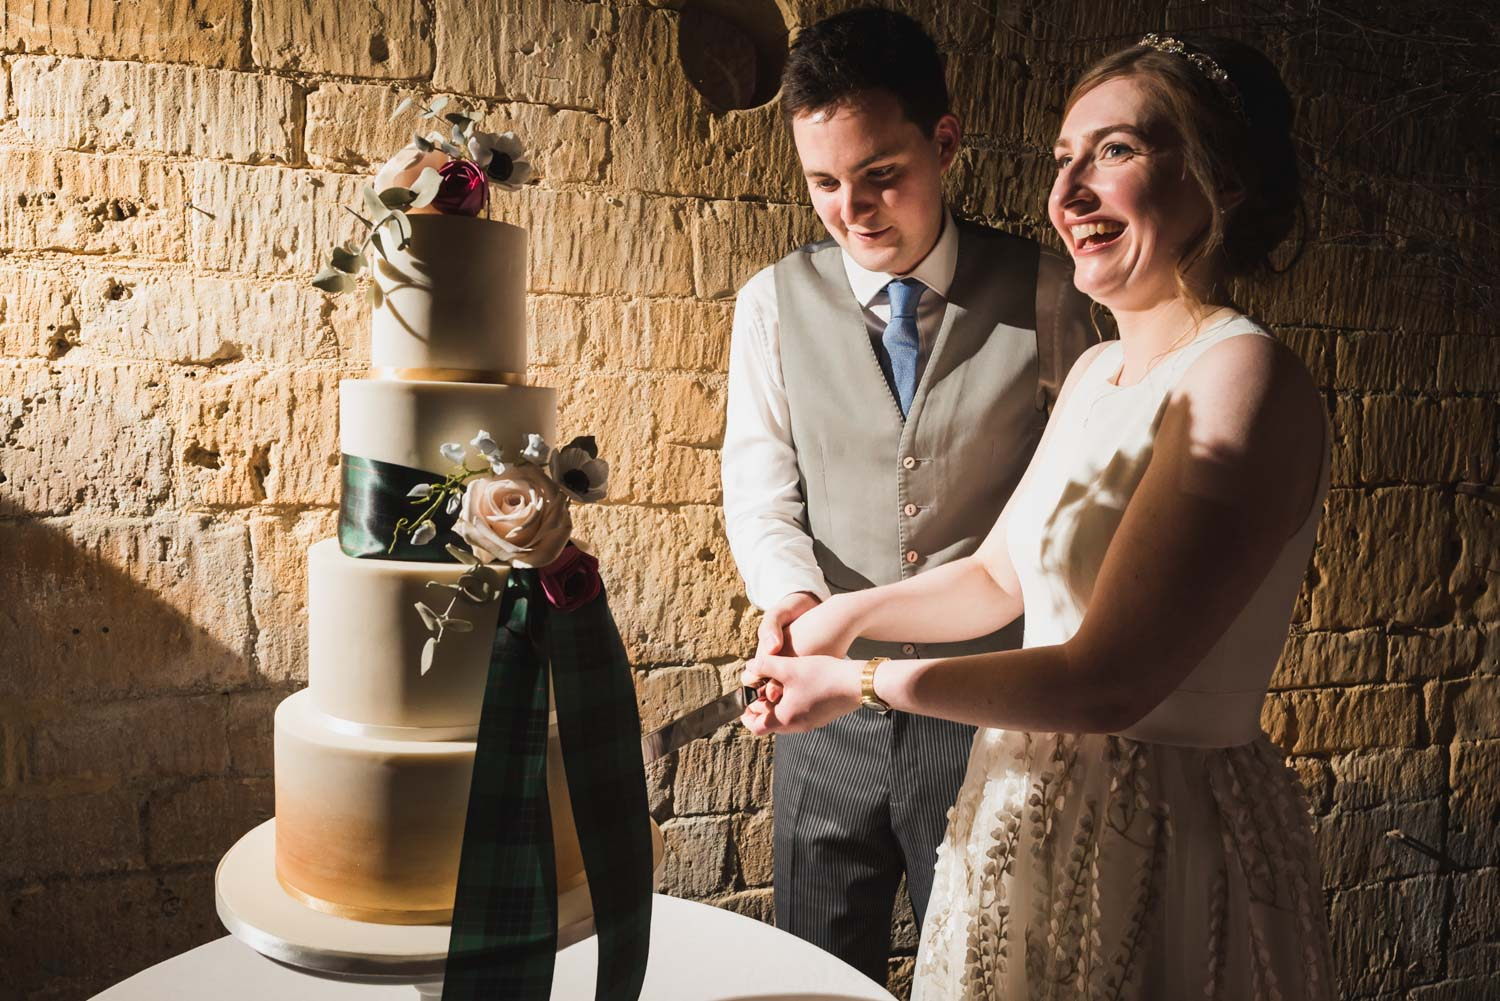 carine bea photography, cut wedding cake